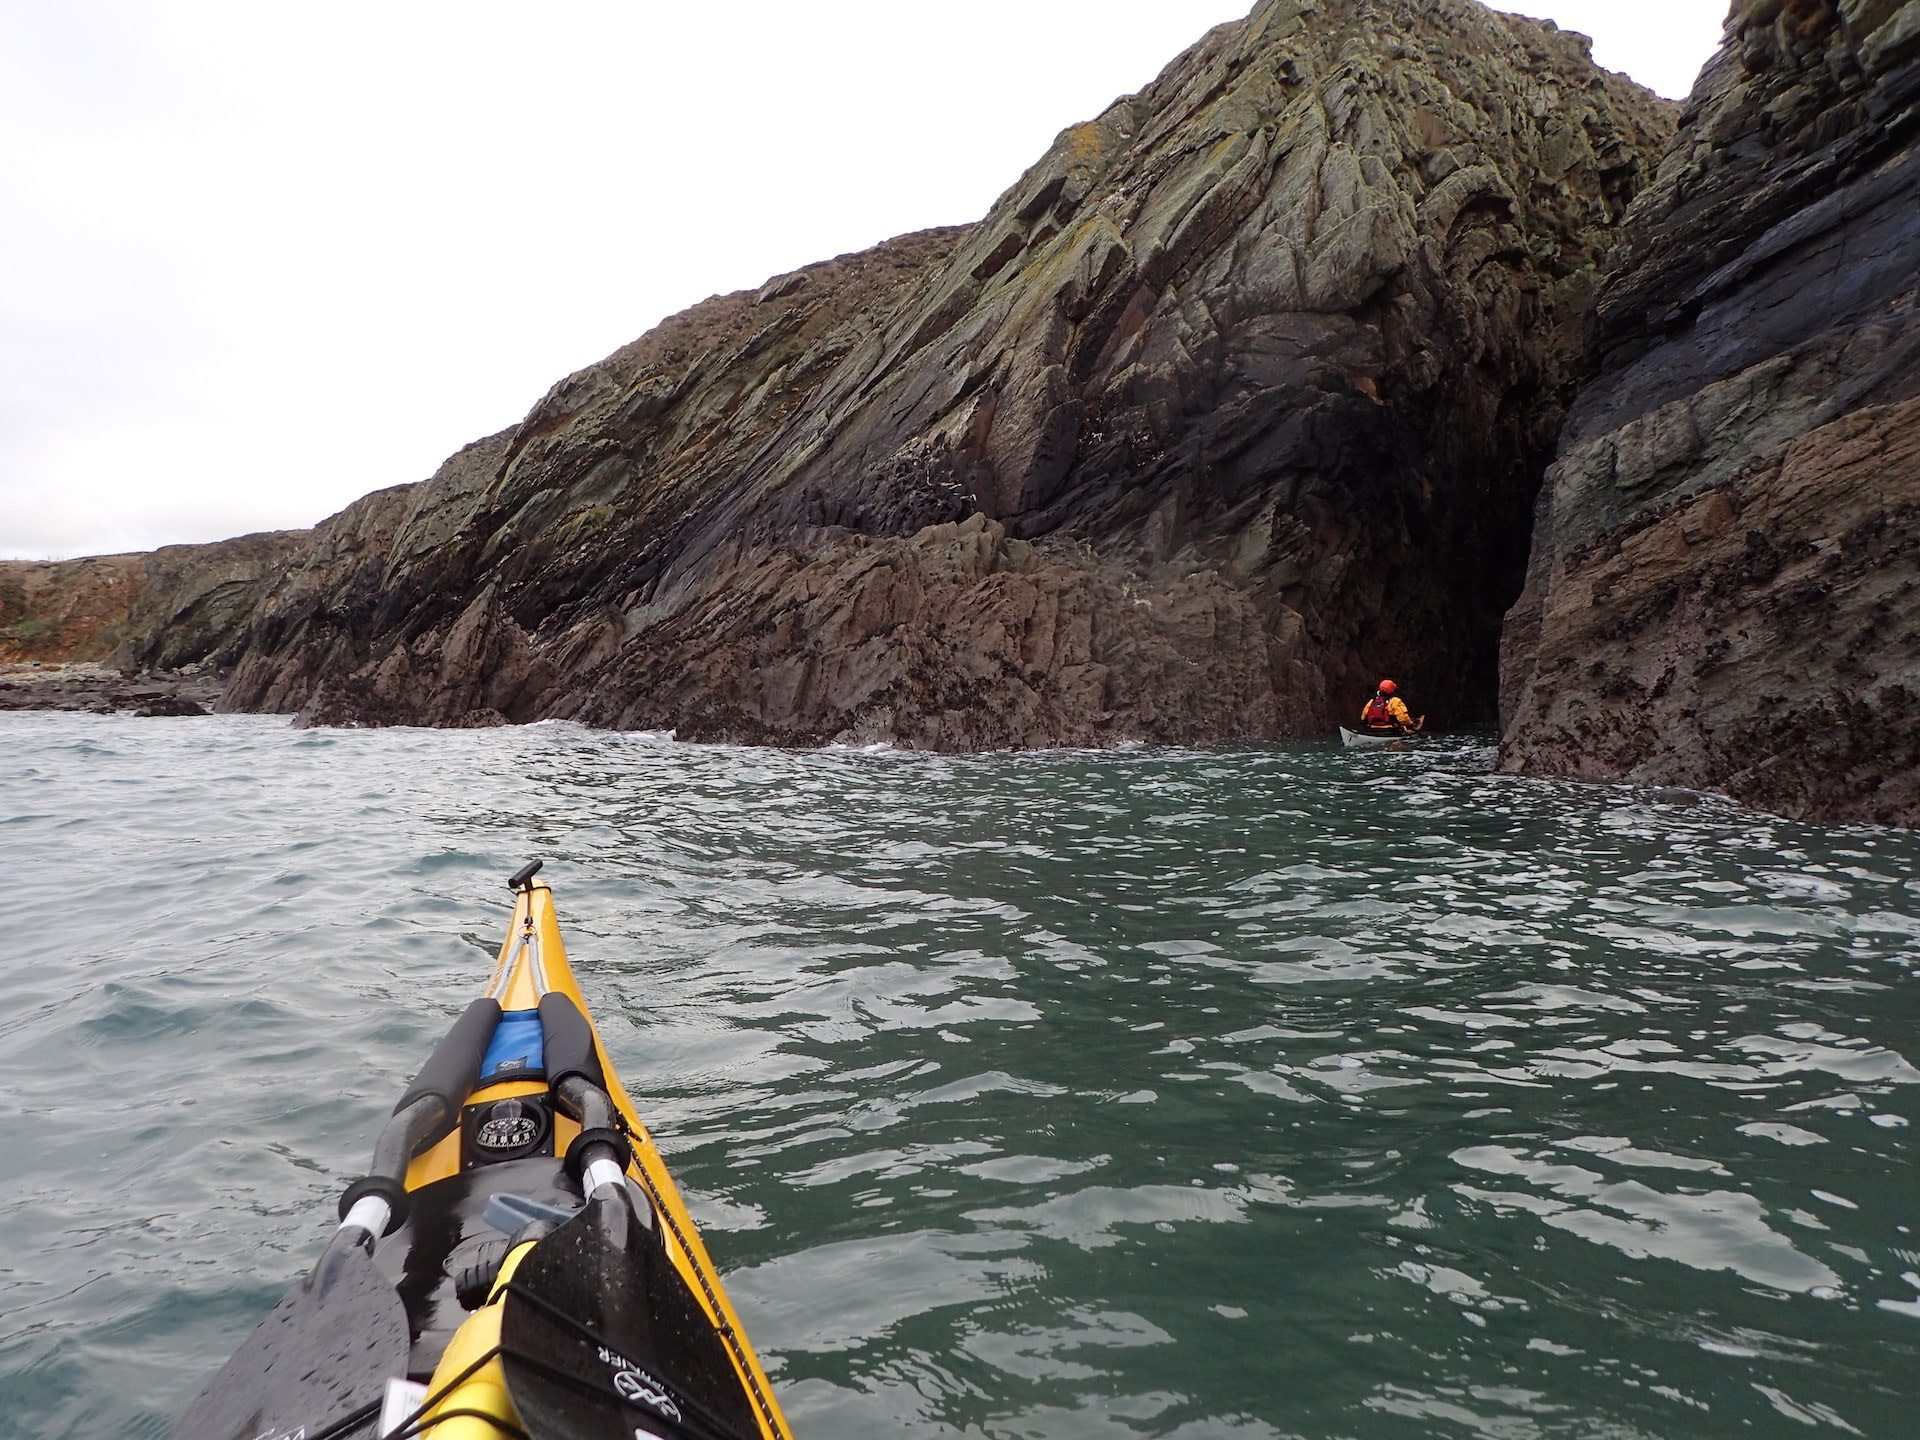 Porth Dafarch to Rhoscolyn and back